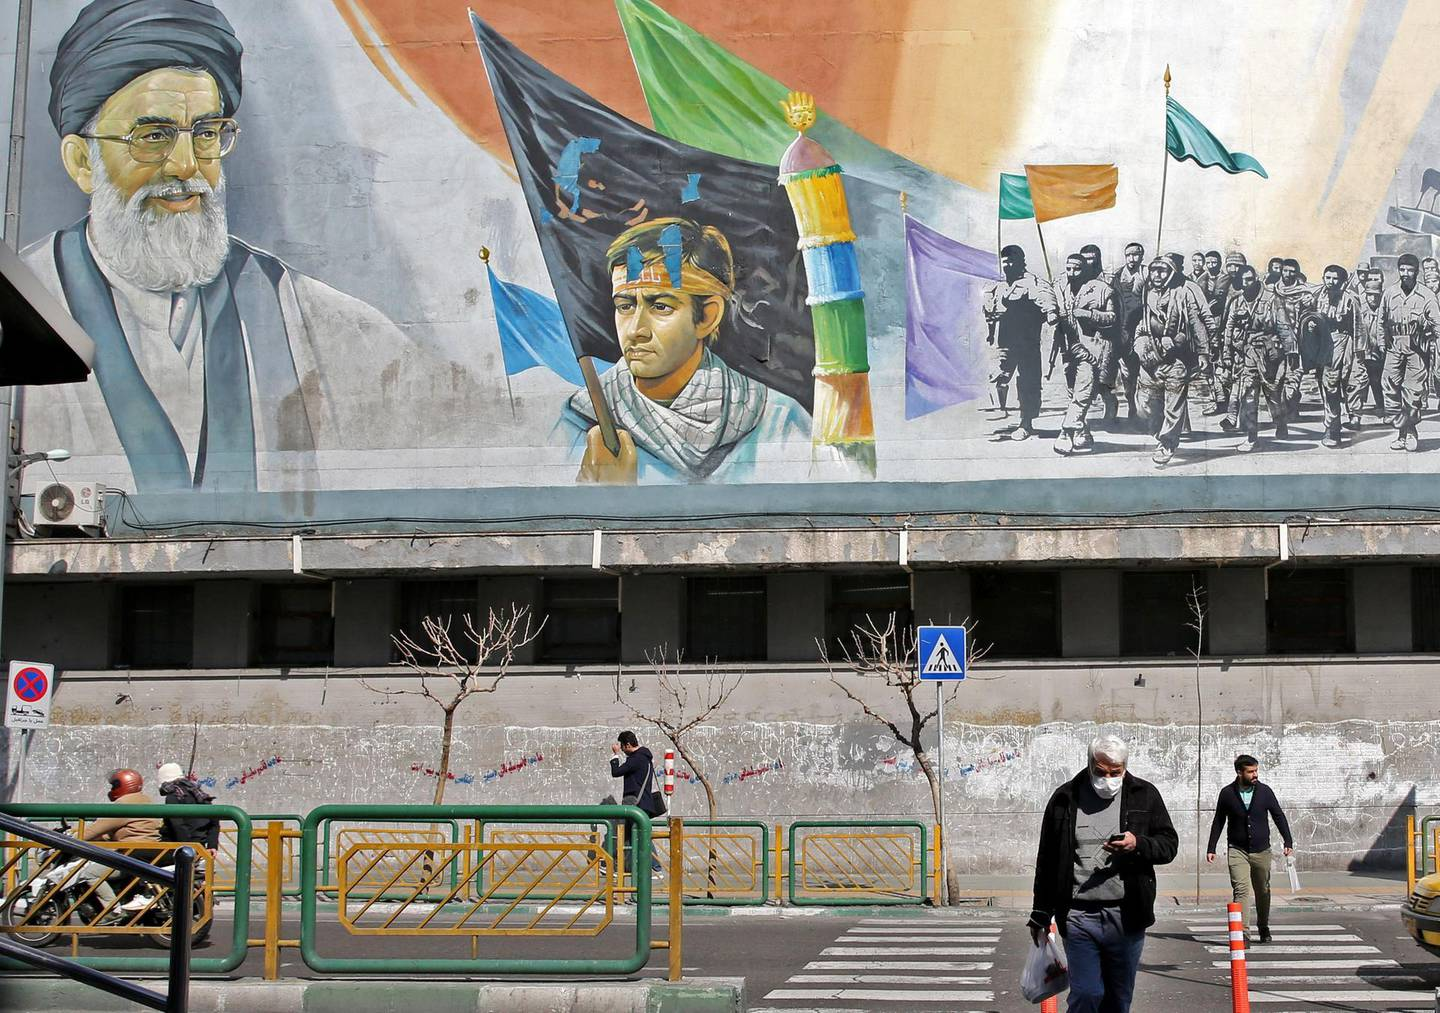 An Iranian man wearing a mask walks under a mural bearing an image of Iran's Supreme Leader Ayatollah Ali Khamenei in Tehran on March 4, 2020. Iran has scrambled to halt the rapid spread of the COVID-19 virus, shutting schools and universities, suspending major cultural and sporting events, and cutting back on work hours.  / AFP / ATTA KENARE